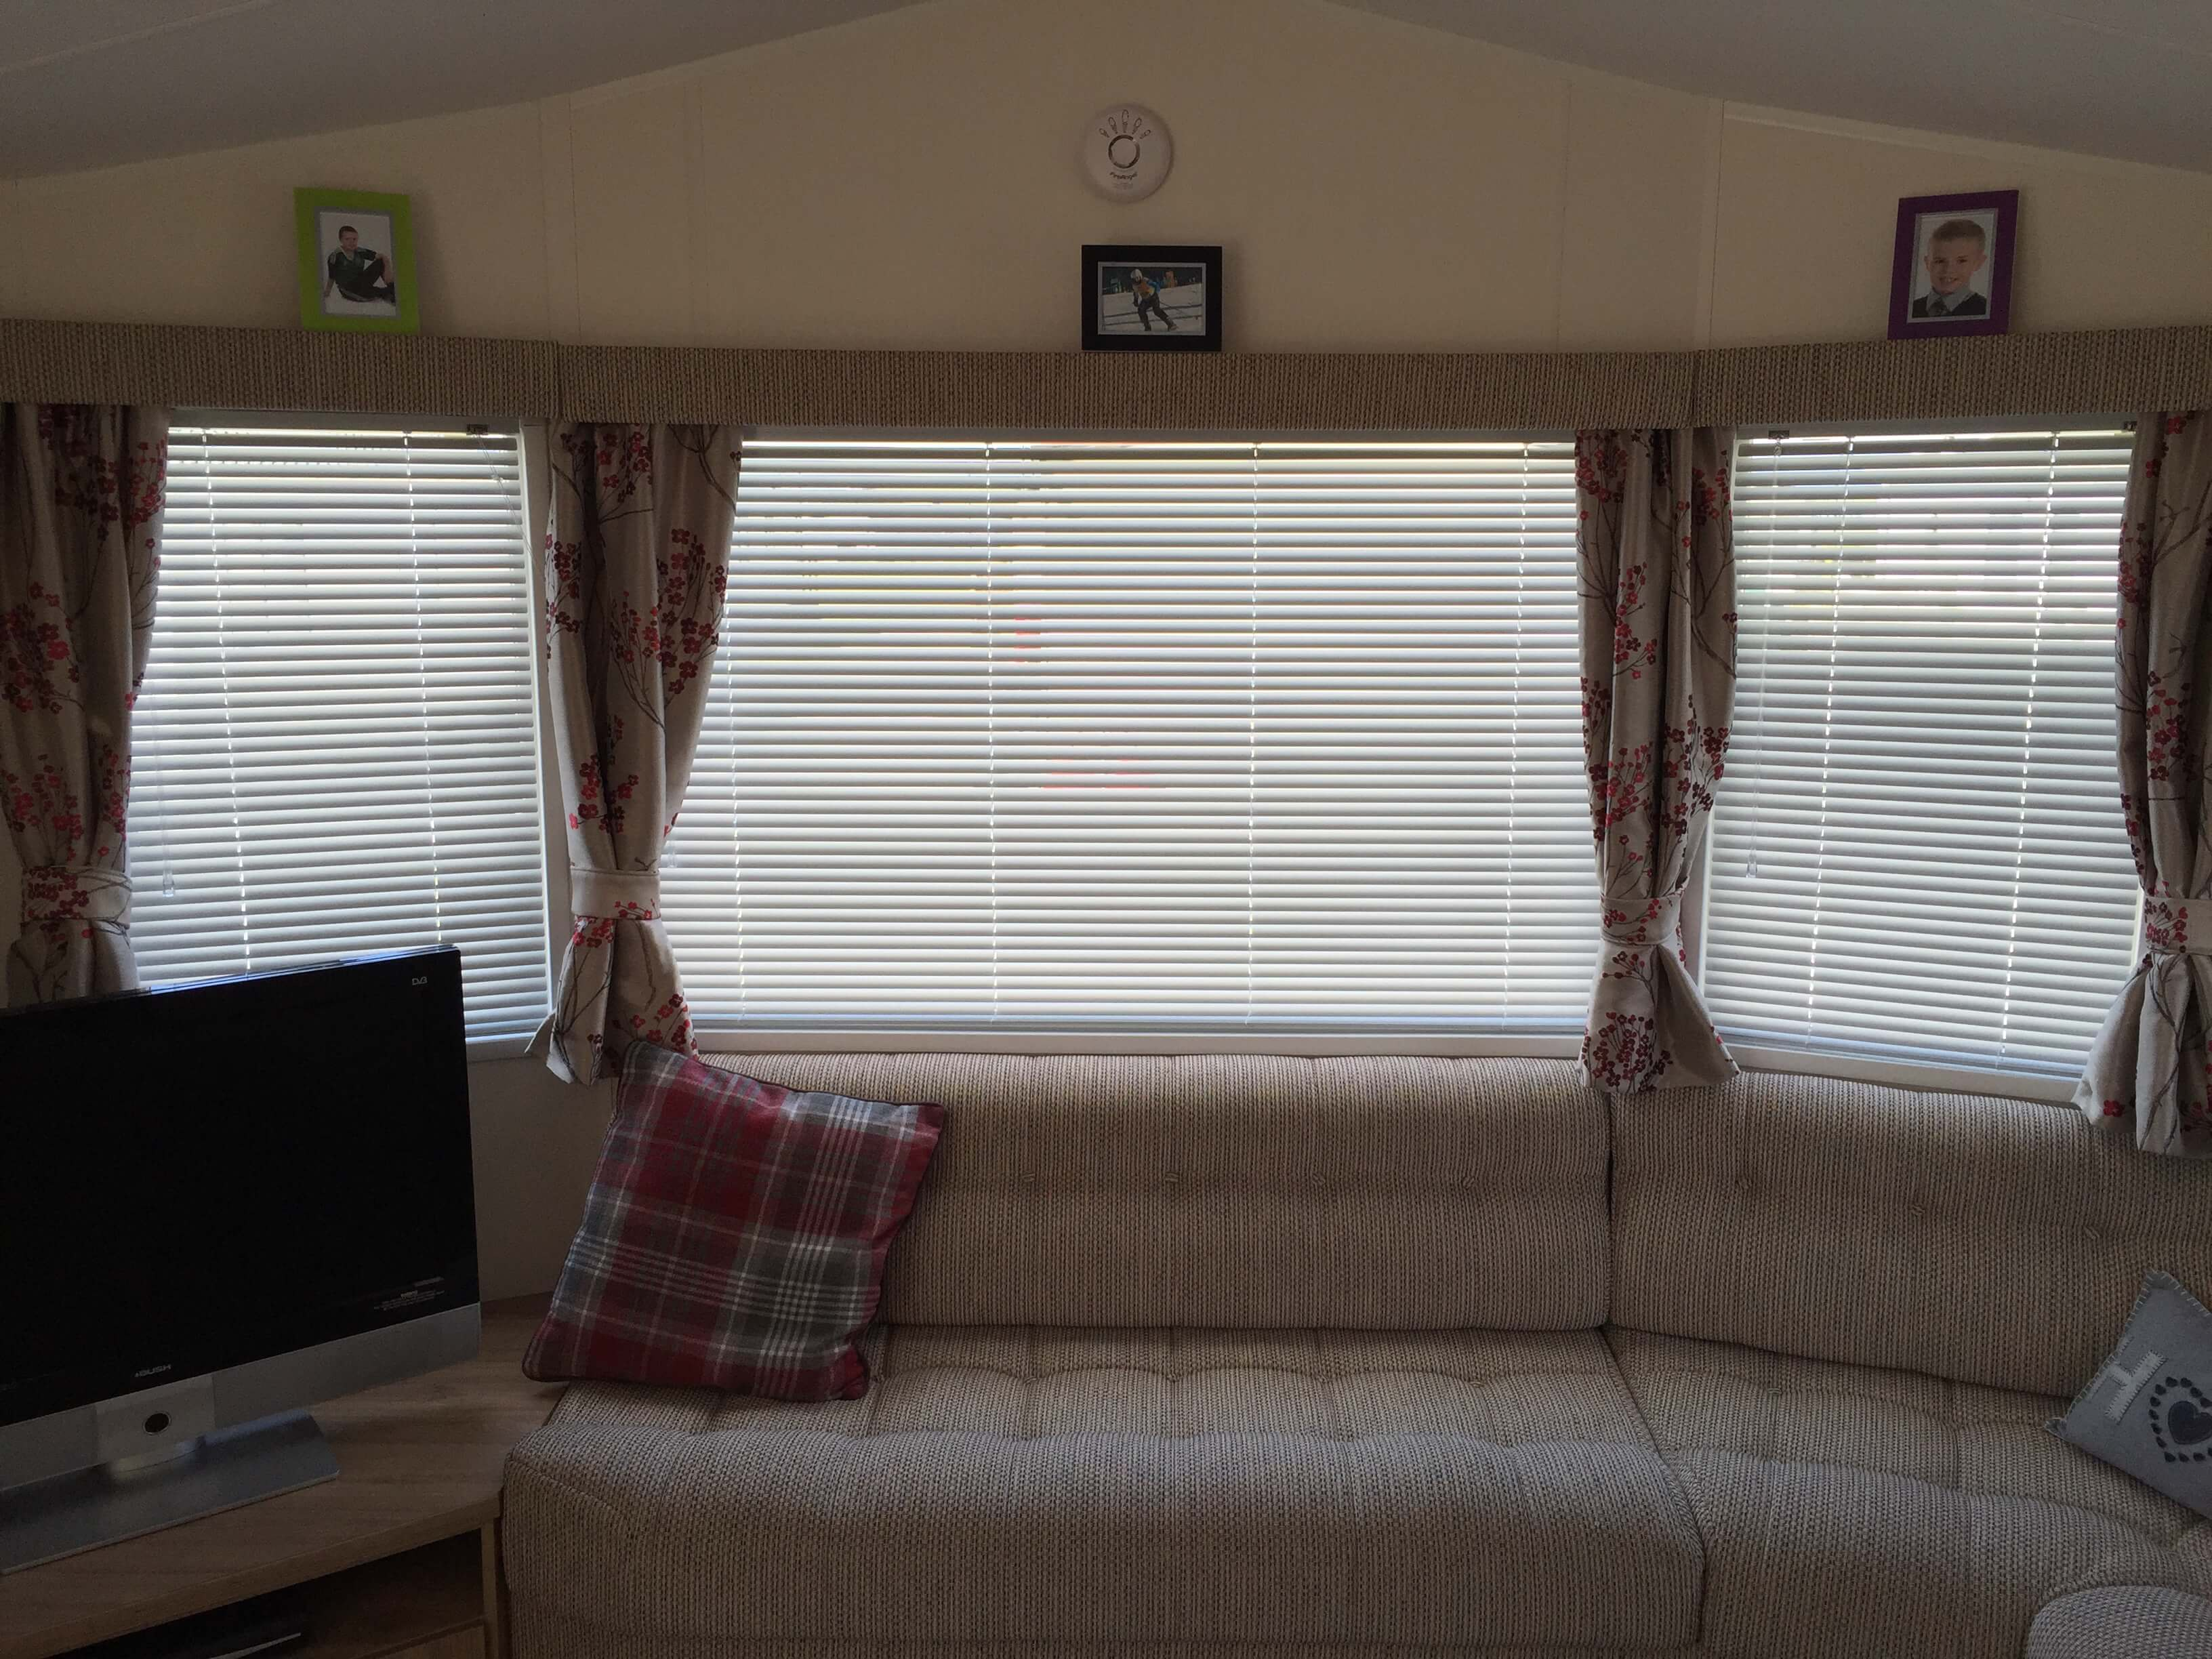 blinds shades vikingblinds burnsville near blind custom locations mn woodbury services stores our home me shopping in